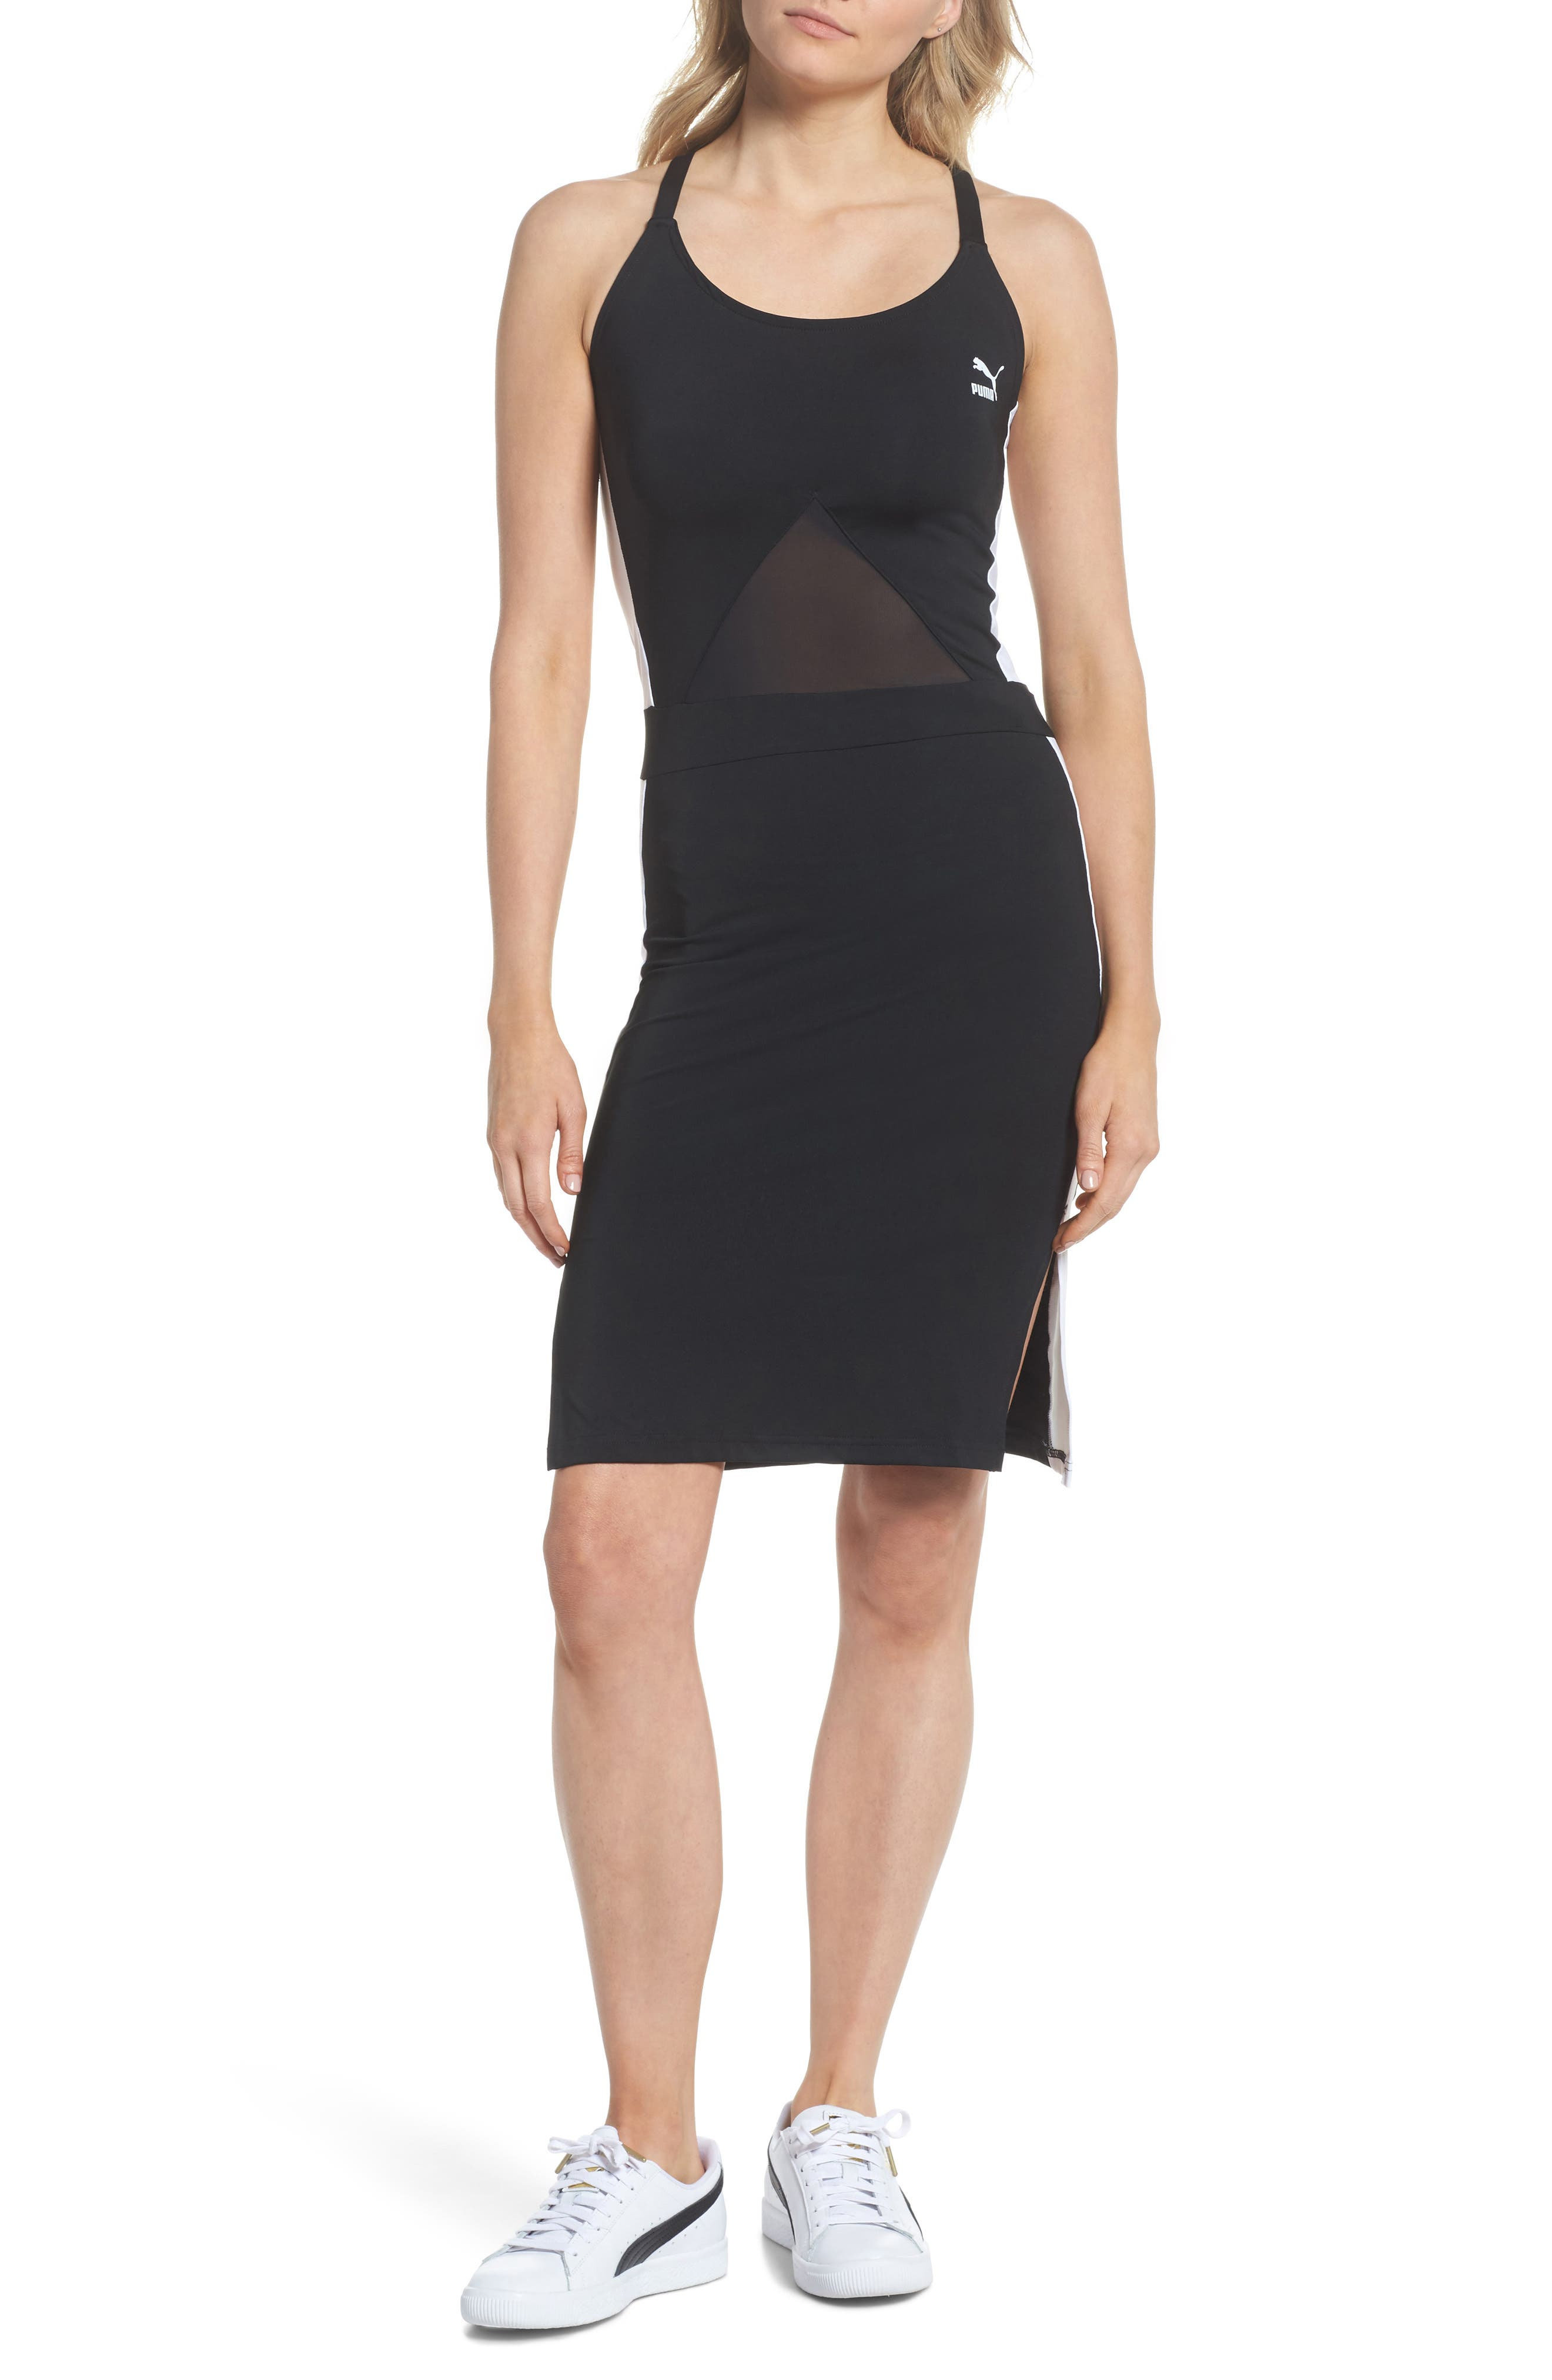 Archive T7 Dress,                         Main,                         color, Puma Black